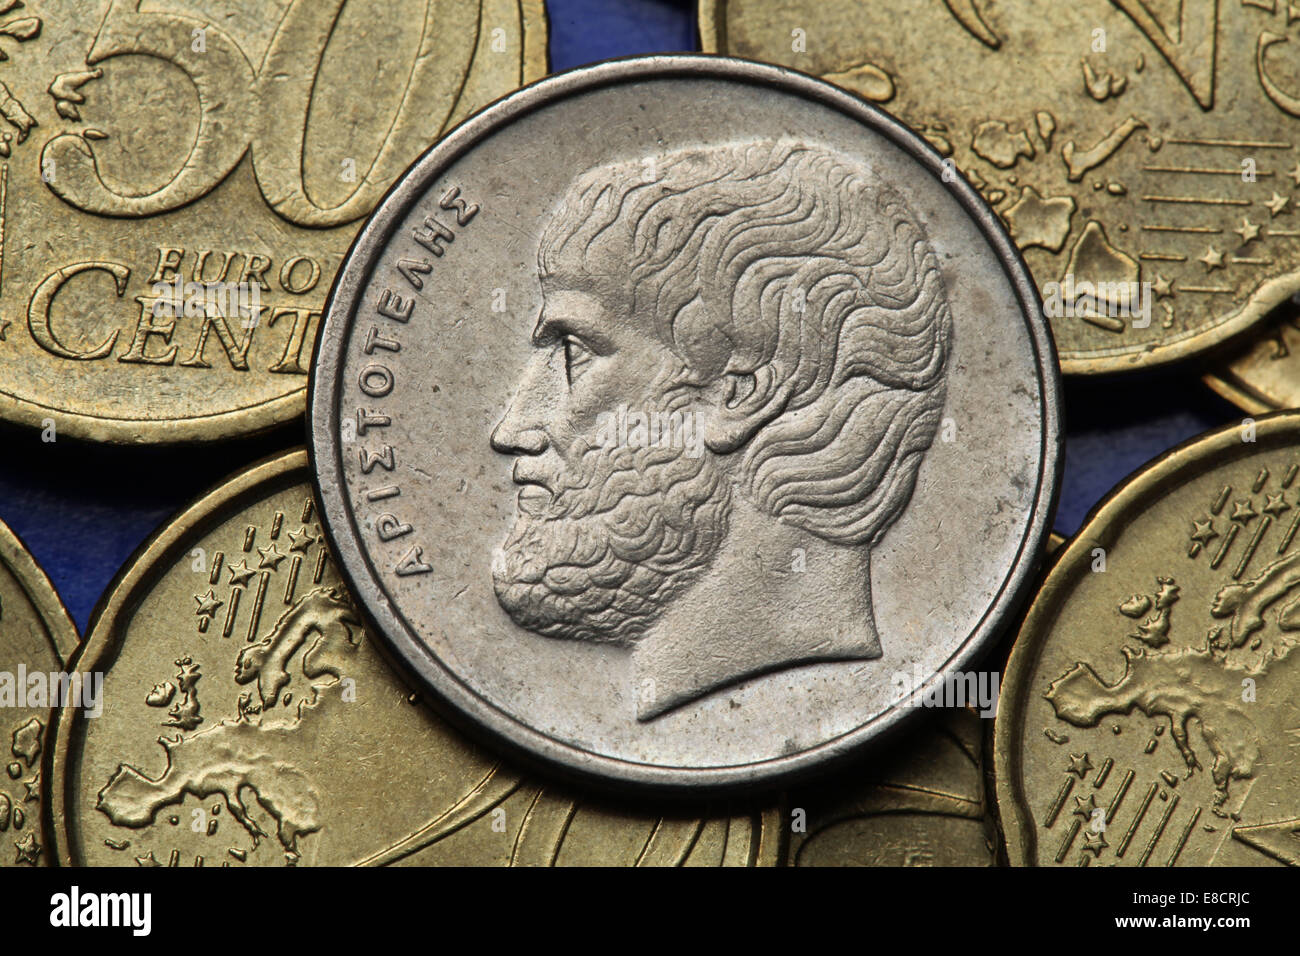 Coins of Greece. Greek philosopher Aristotle depicted in the old Greek five drachma coin. - Stock Image